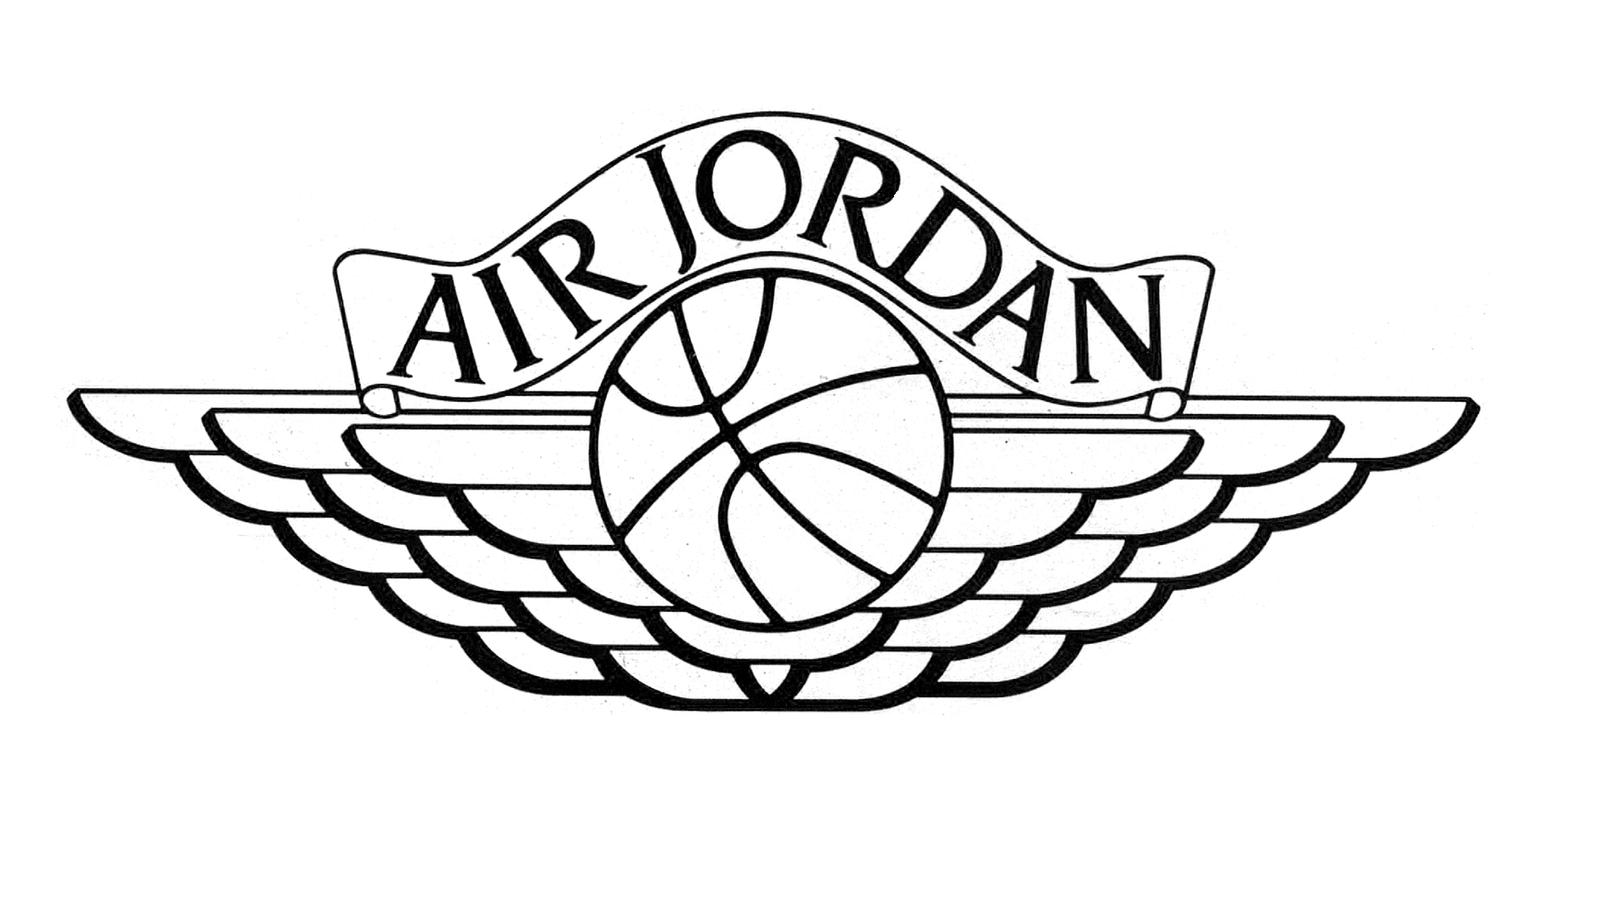 Air Jordan Logo - Inside Access: An Evolving Jordan Brand Continues to Inspire the ...